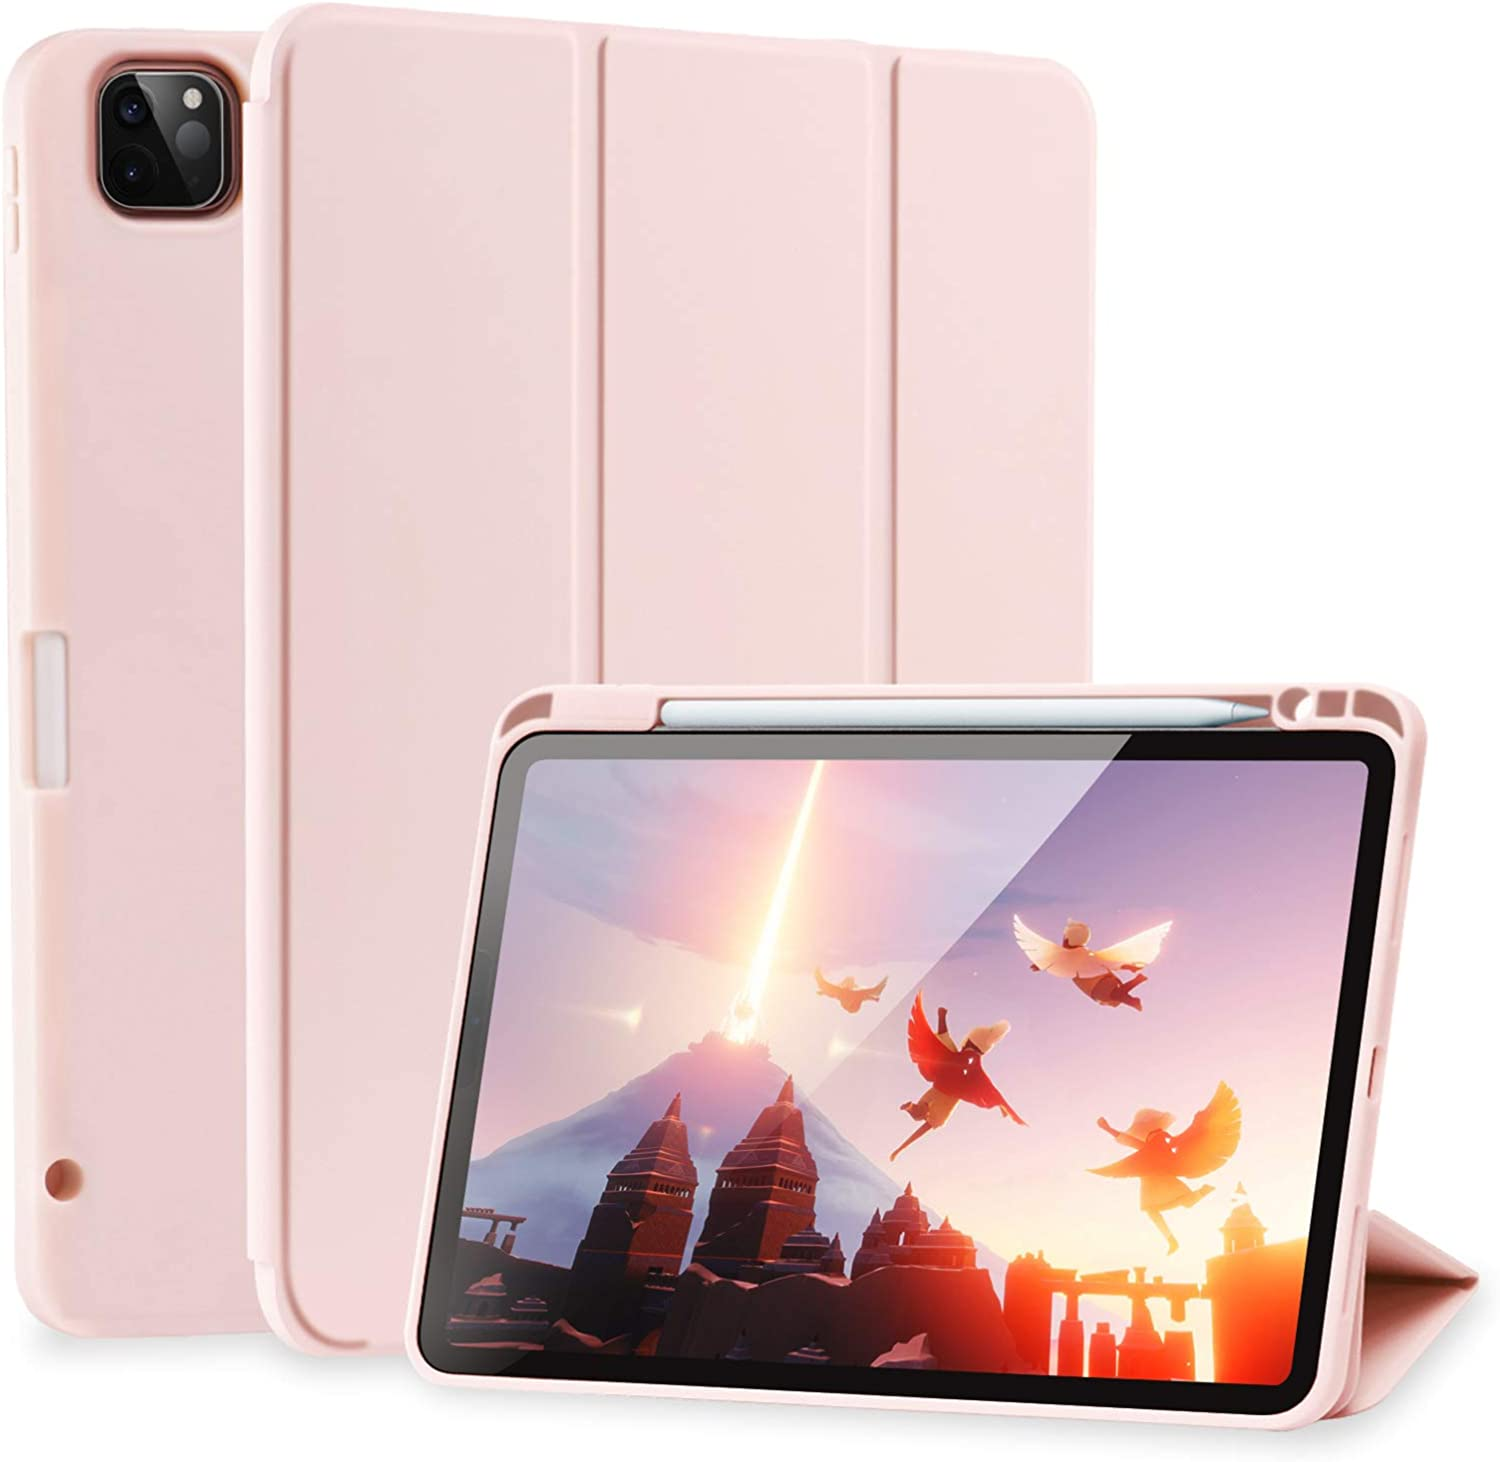 SIWENGDE Case for iPad Pro 12.9 case 4th Generation 2020 Support Apple 2nd Pencil Charging & Pair, Slim Lightweight Trifold Stand Smart Protective Case Cover for Kids (Rose Pink)